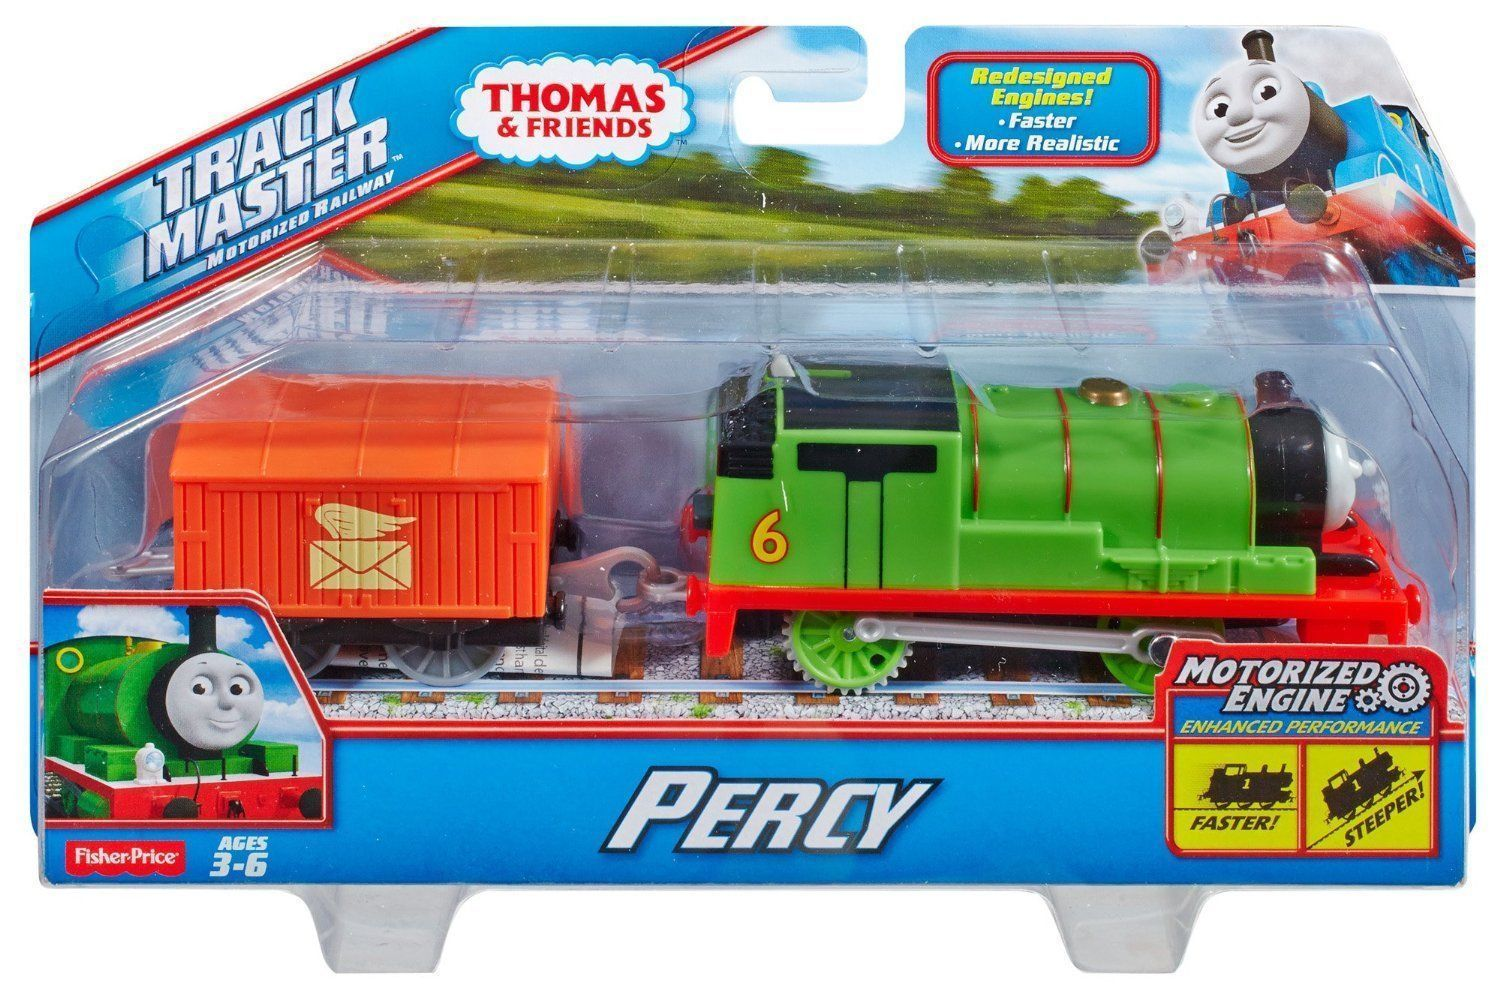 Thomas Amp Friends Trackmaster Motorized Railway Percy Engine